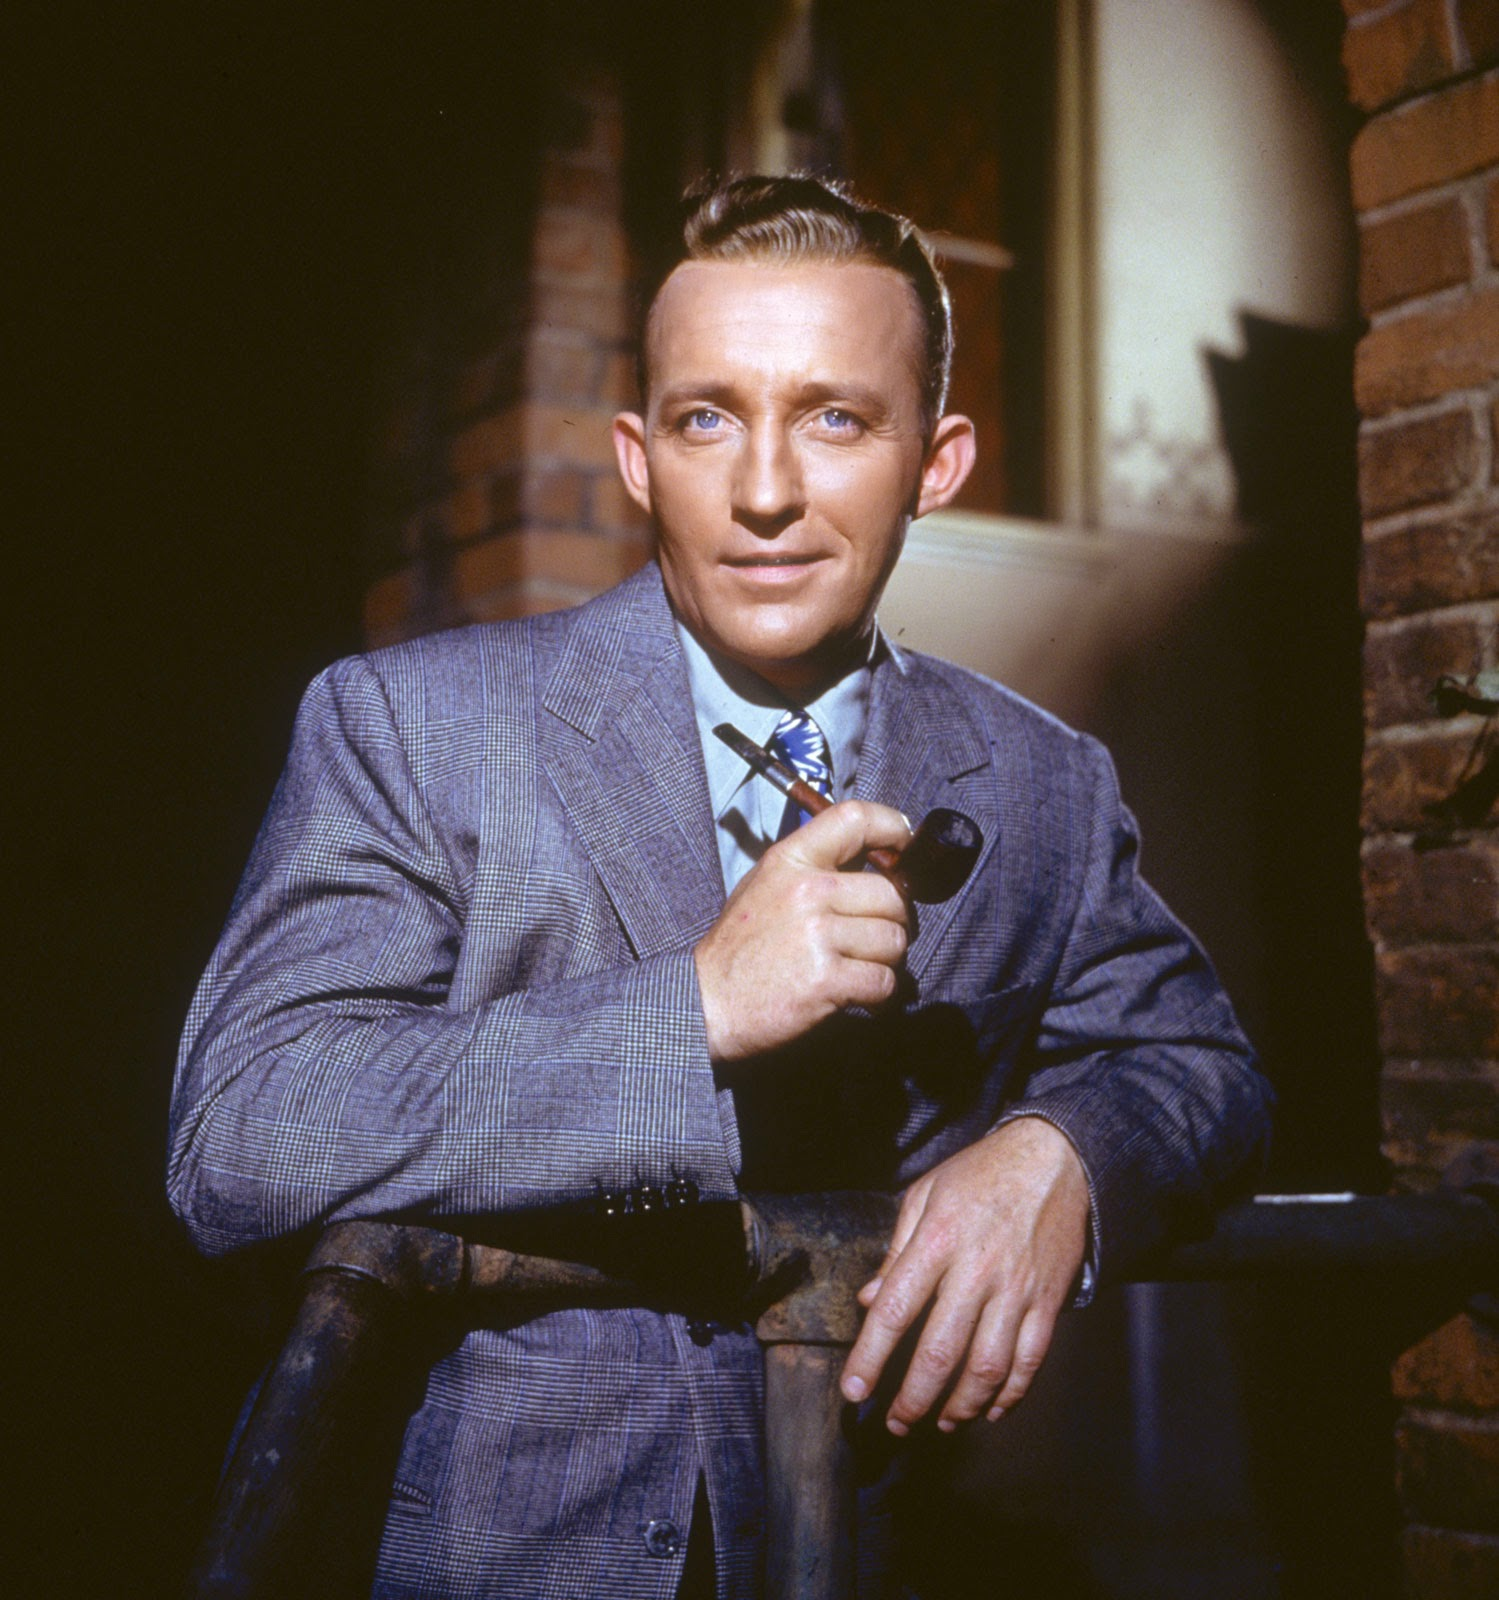 Bing crosby dissertation on the state of bliss